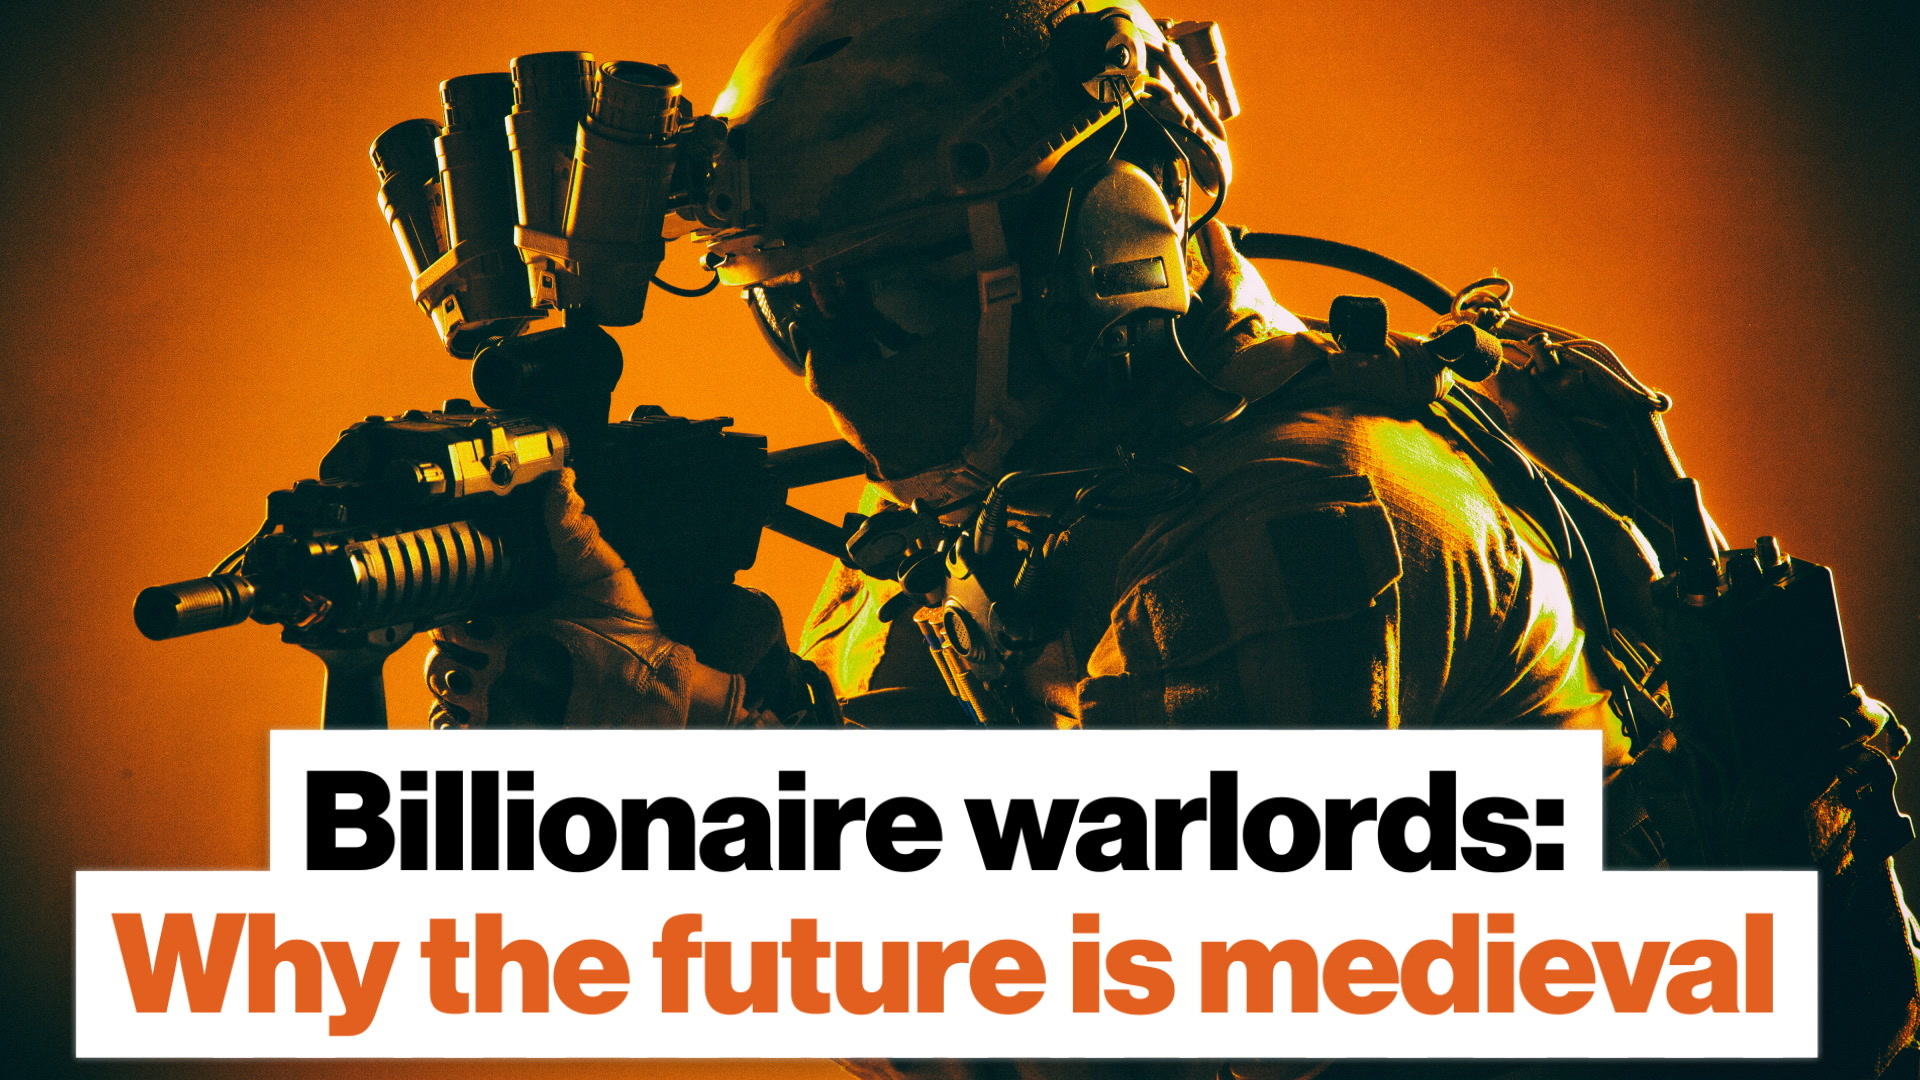 Billionaire warlords: Why the future is medieval